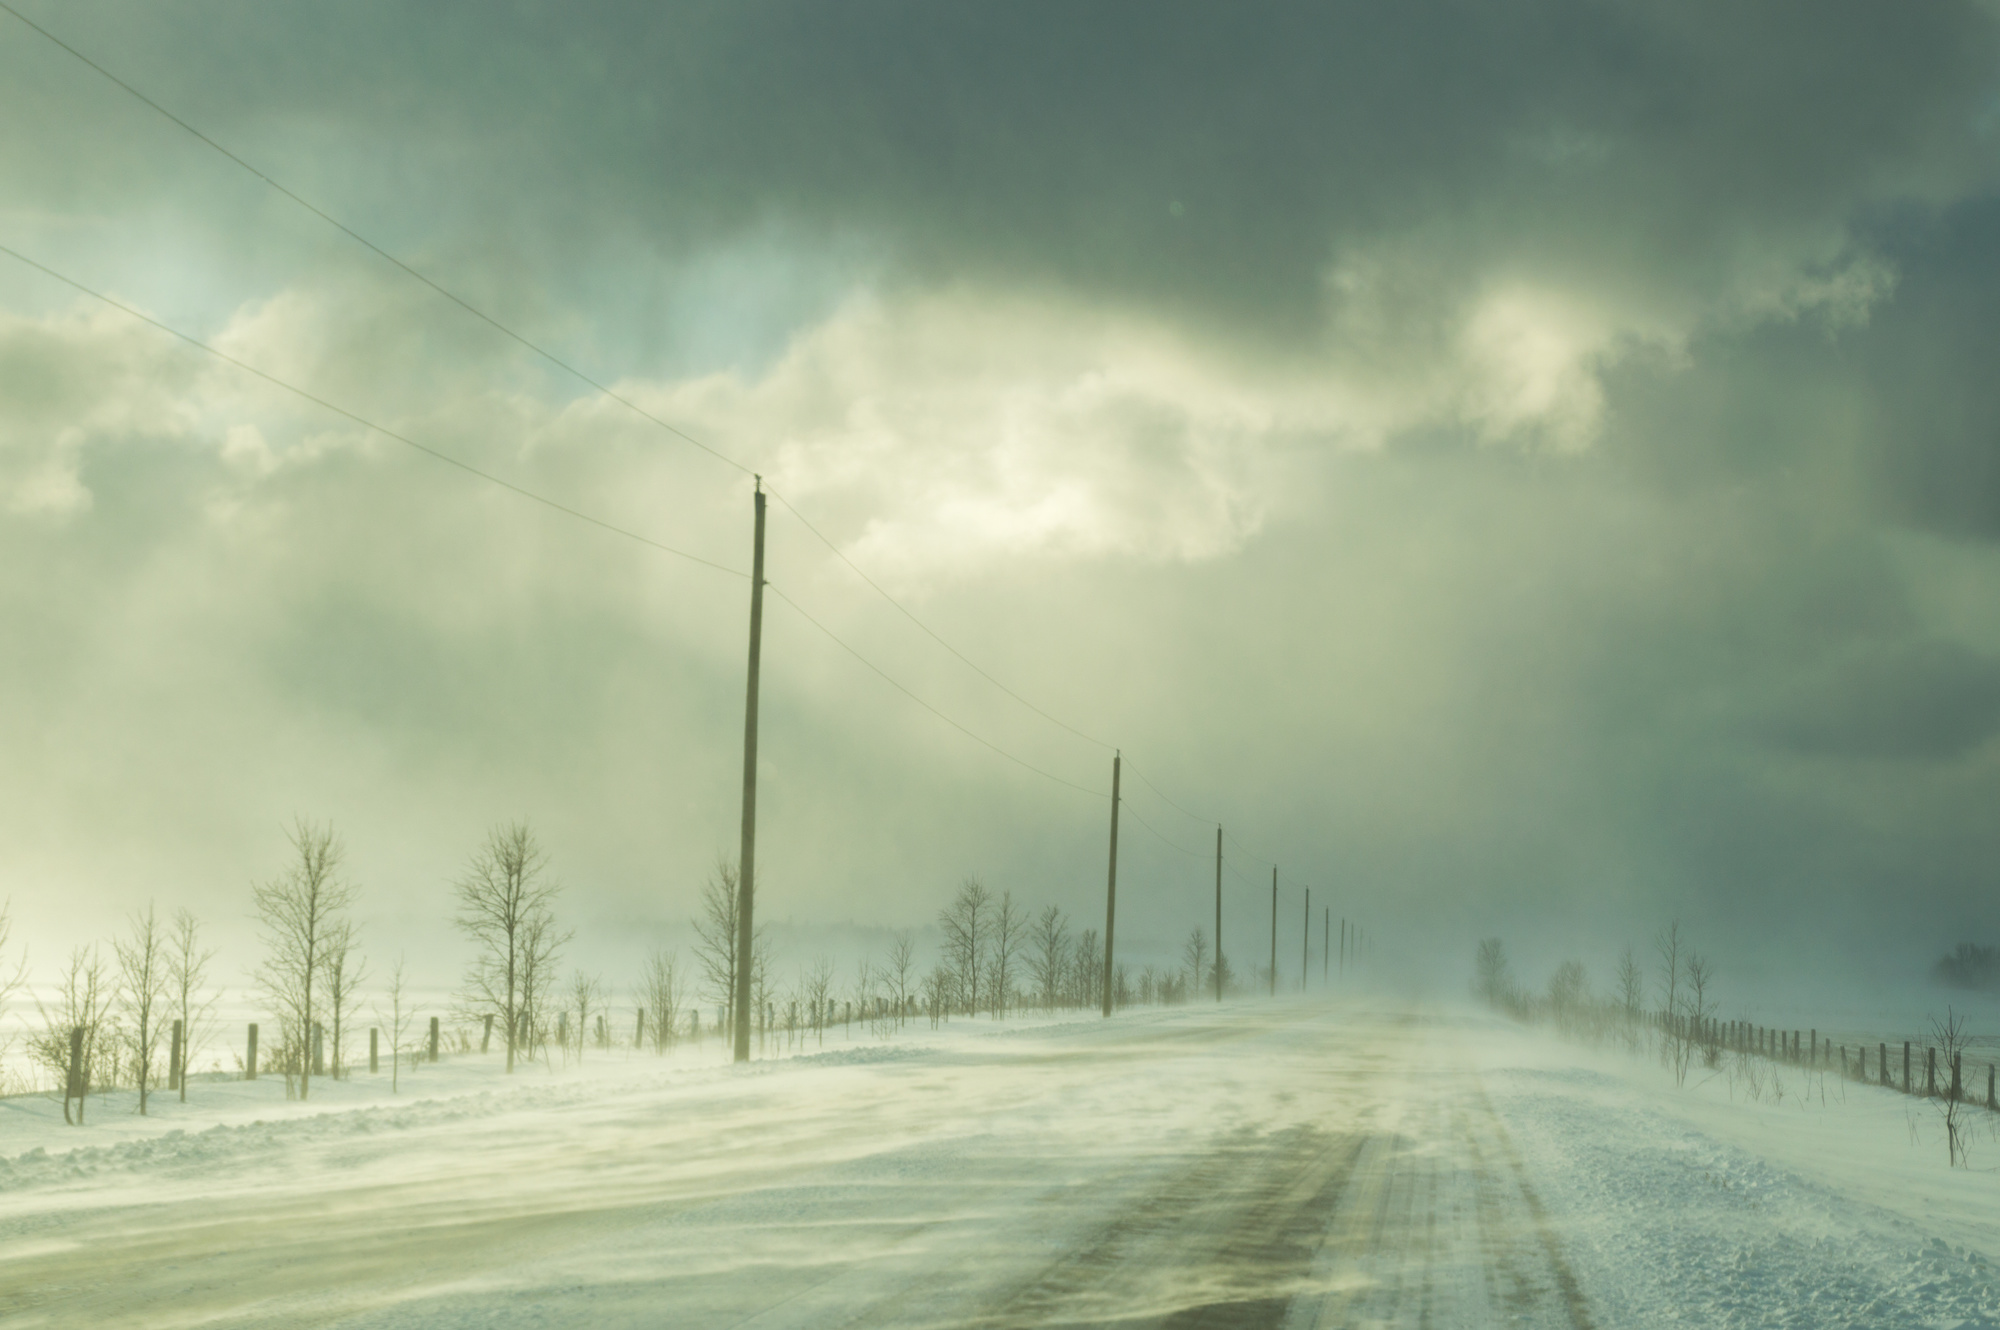 Snow squall alerts issued for the Elliot Lake and area - ElliotLakeToday.com